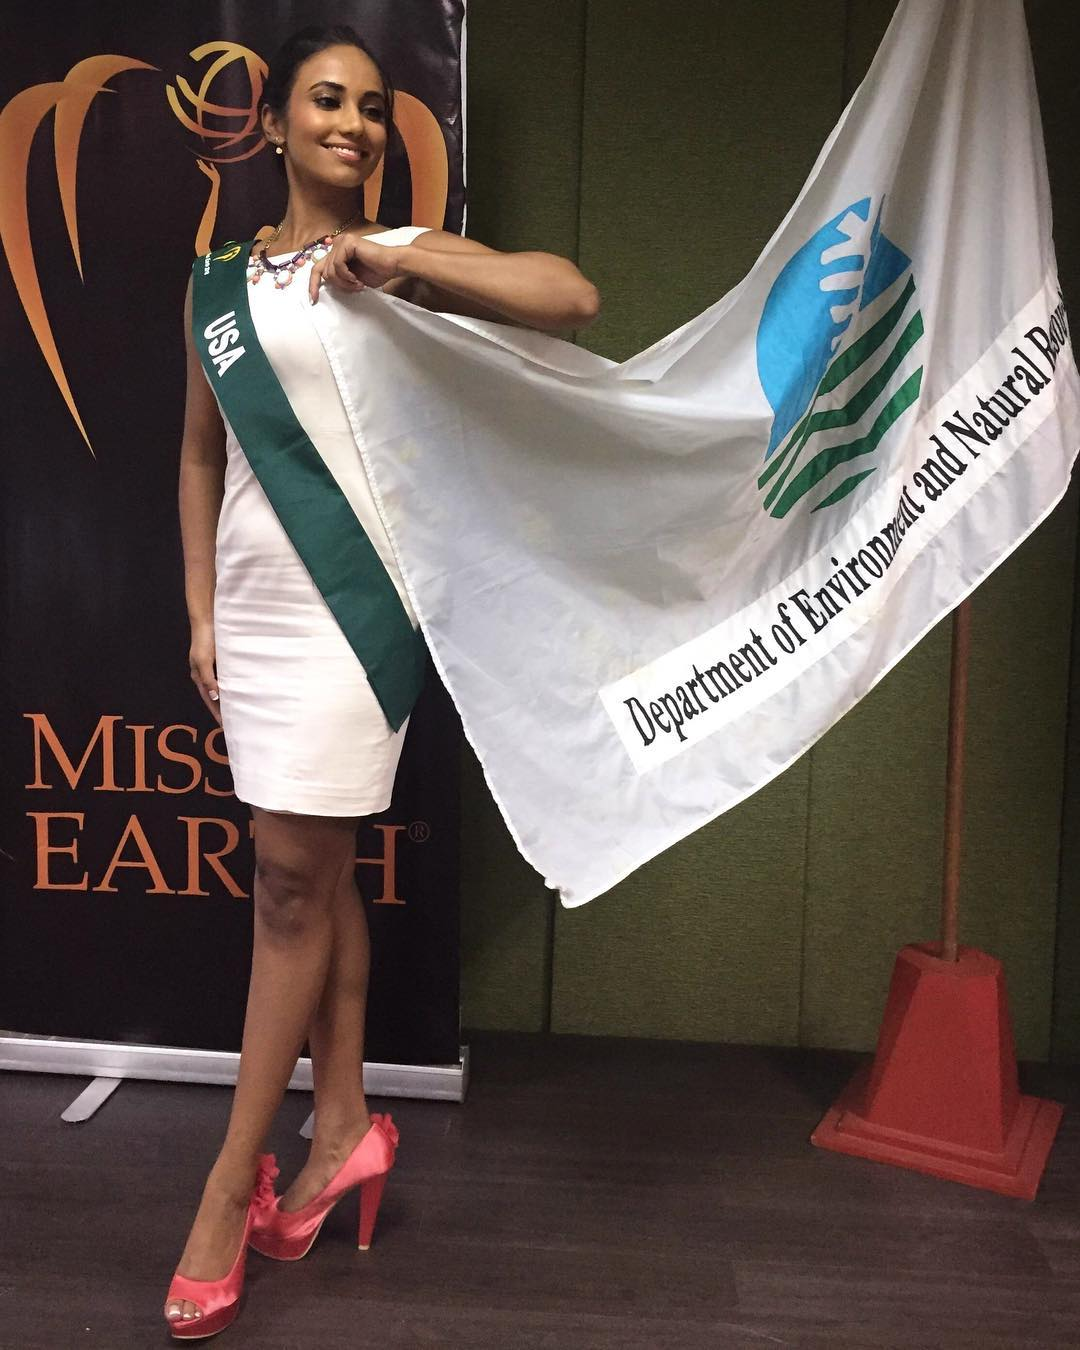 yashvi aware, miss earth usa 2018. - Página 5 42324910